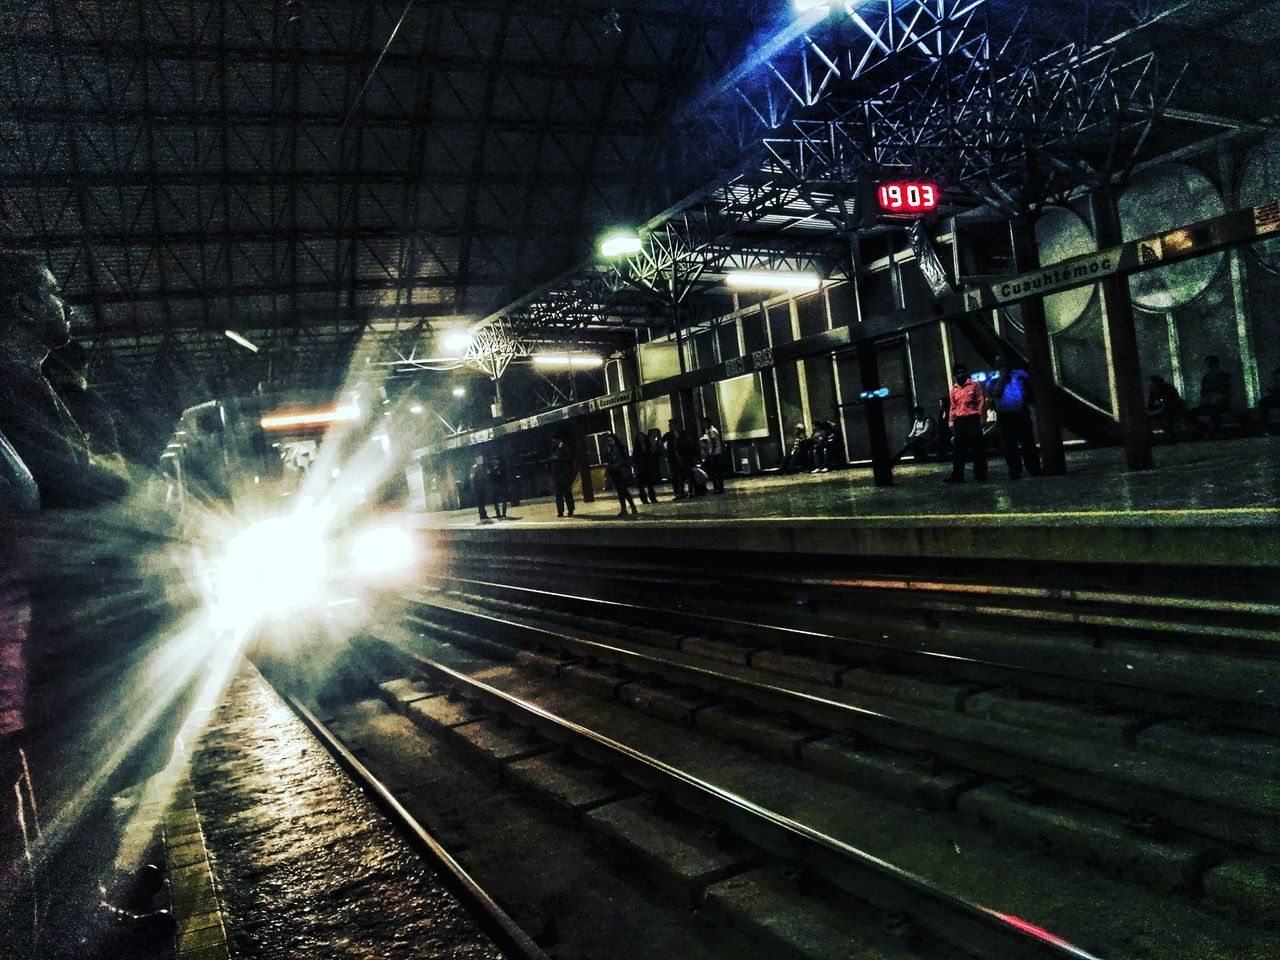 railroad track, rail transportation, transportation, illuminated, public transportation, railroad station platform, night, railroad station, railway track, real people, outdoors, built structure, architecture